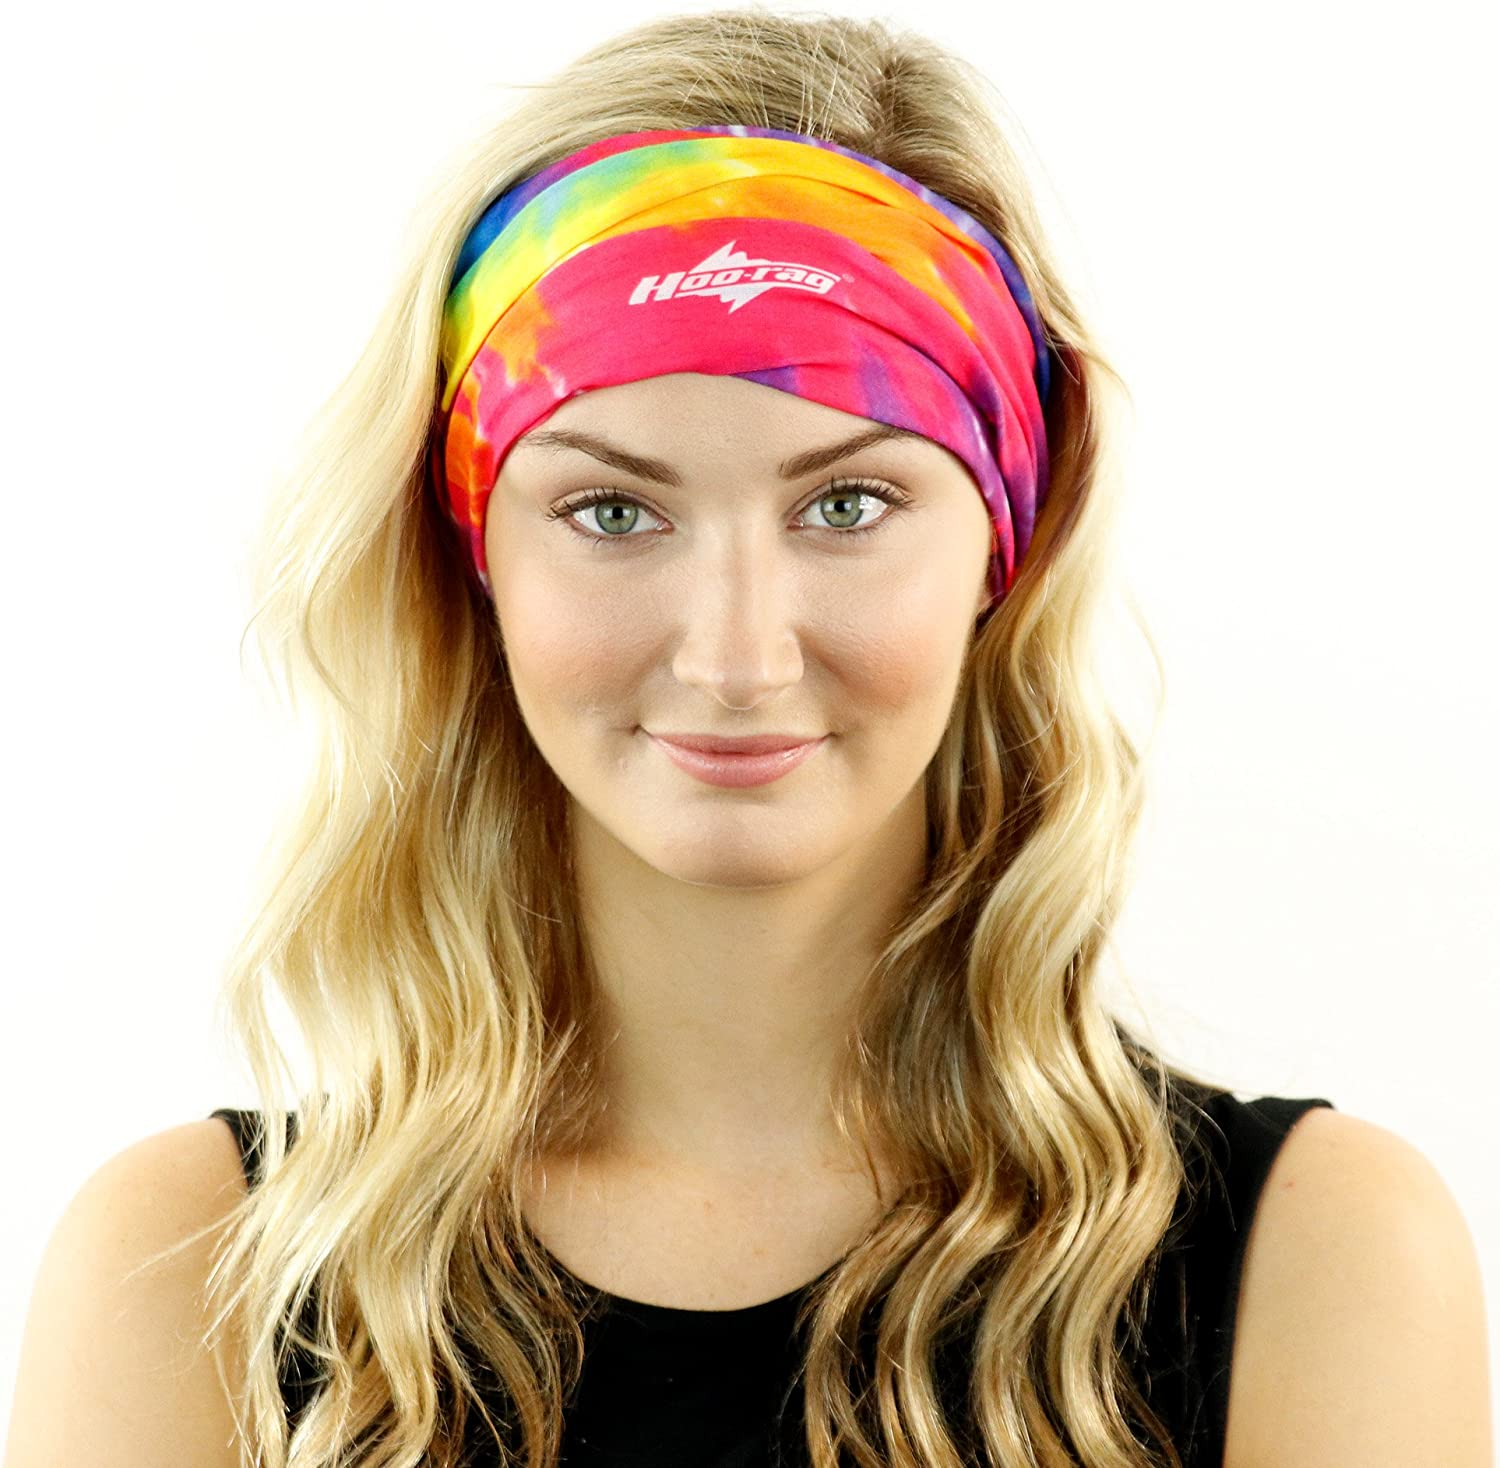 Hoo-Rag - High Performance 100% Moisture Wicking Polyester Microfiber Multi-Functional Face Mask & Neck Cover - UPF 30 - One Size Fits Most - Tie Dye